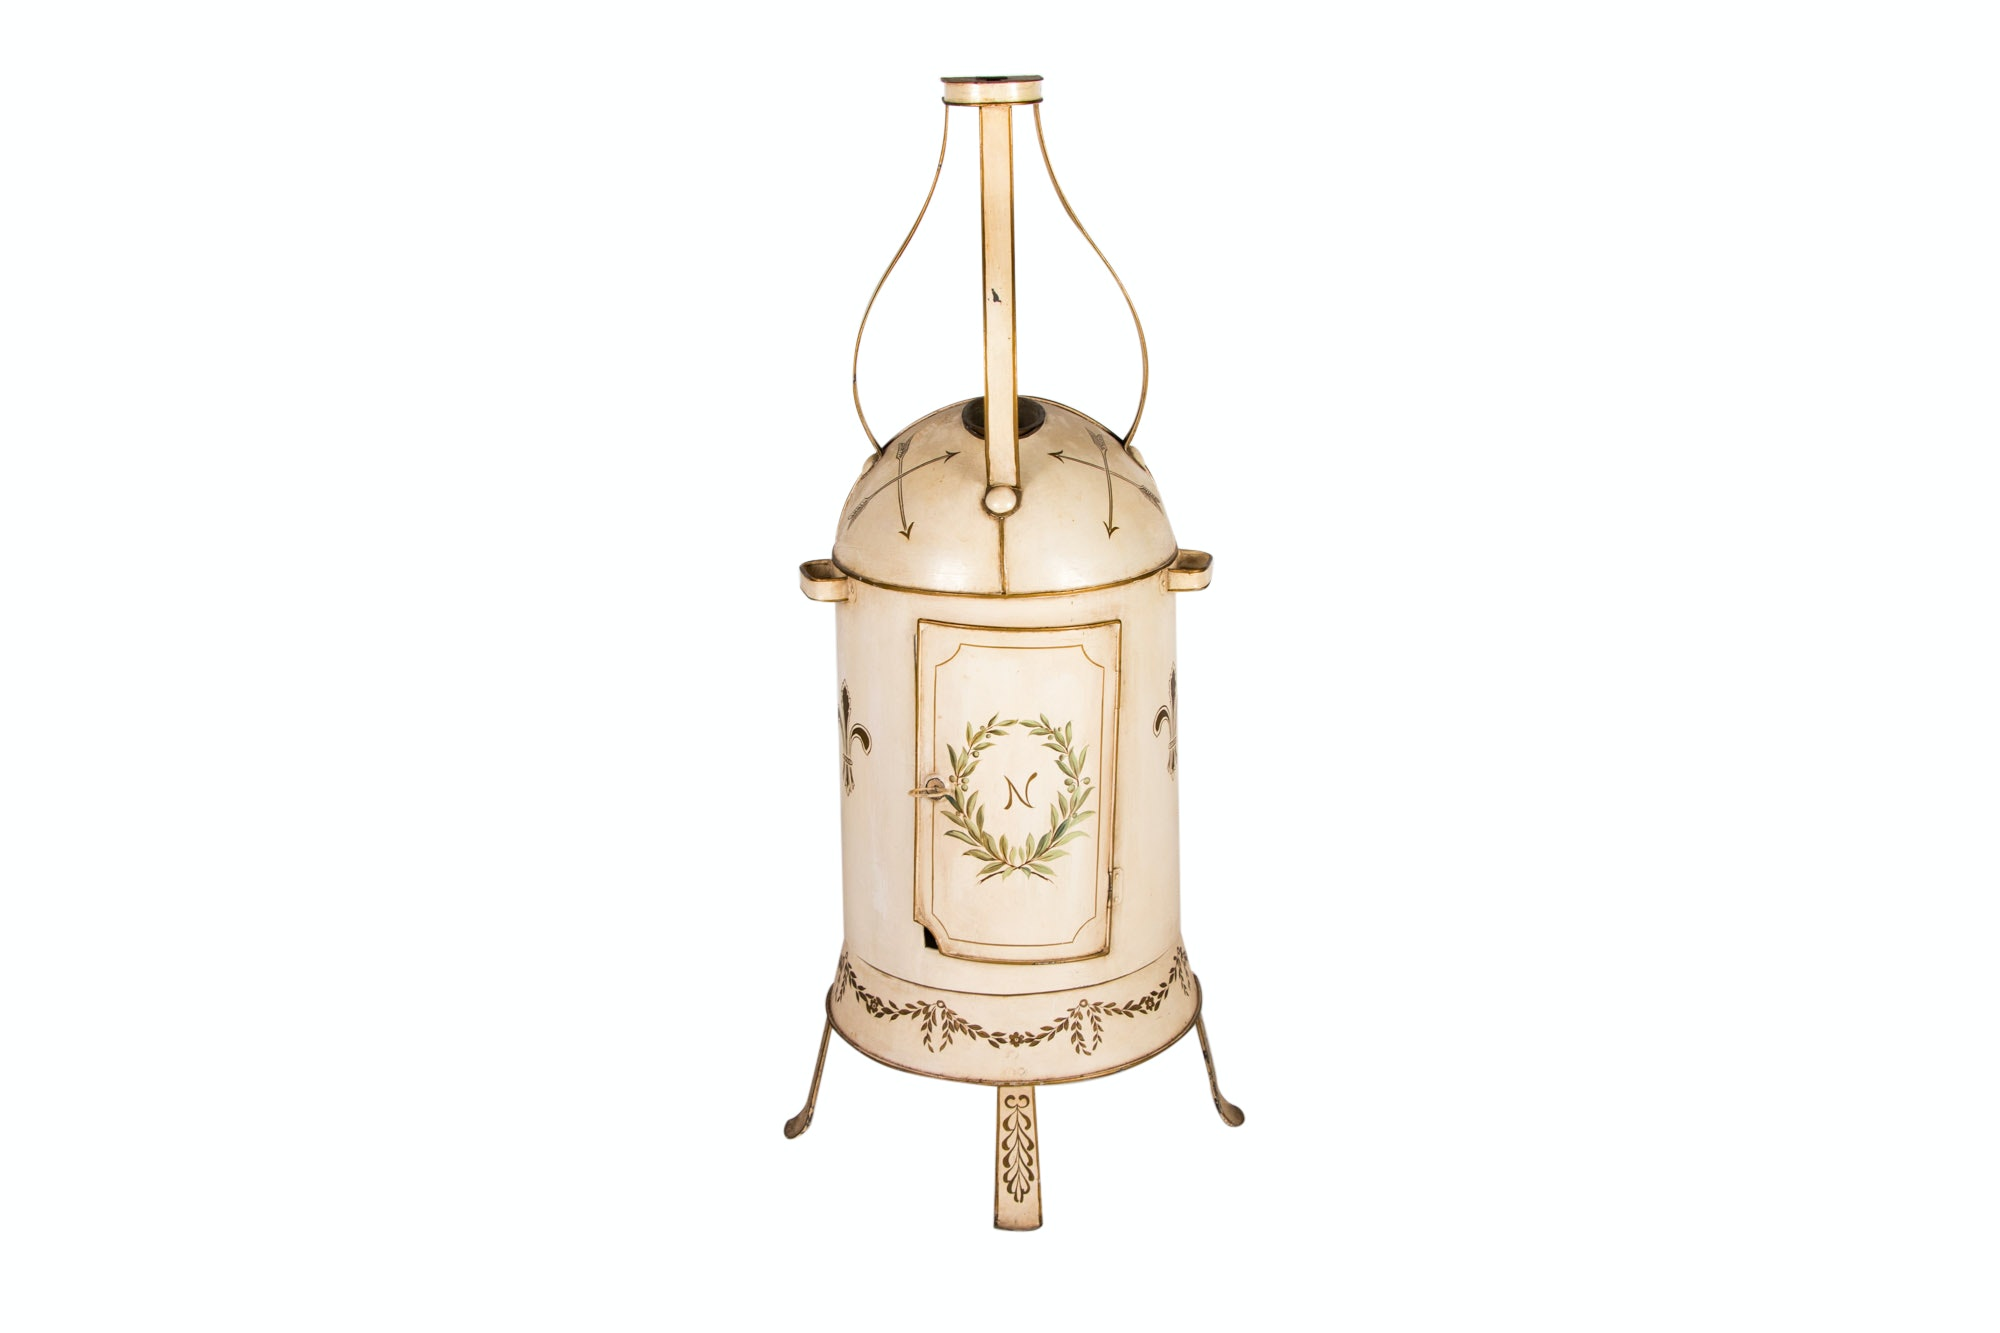 Neoclassical Style Tole-Painted and Parcel-Gilt Ornamental Stove, 20th Century